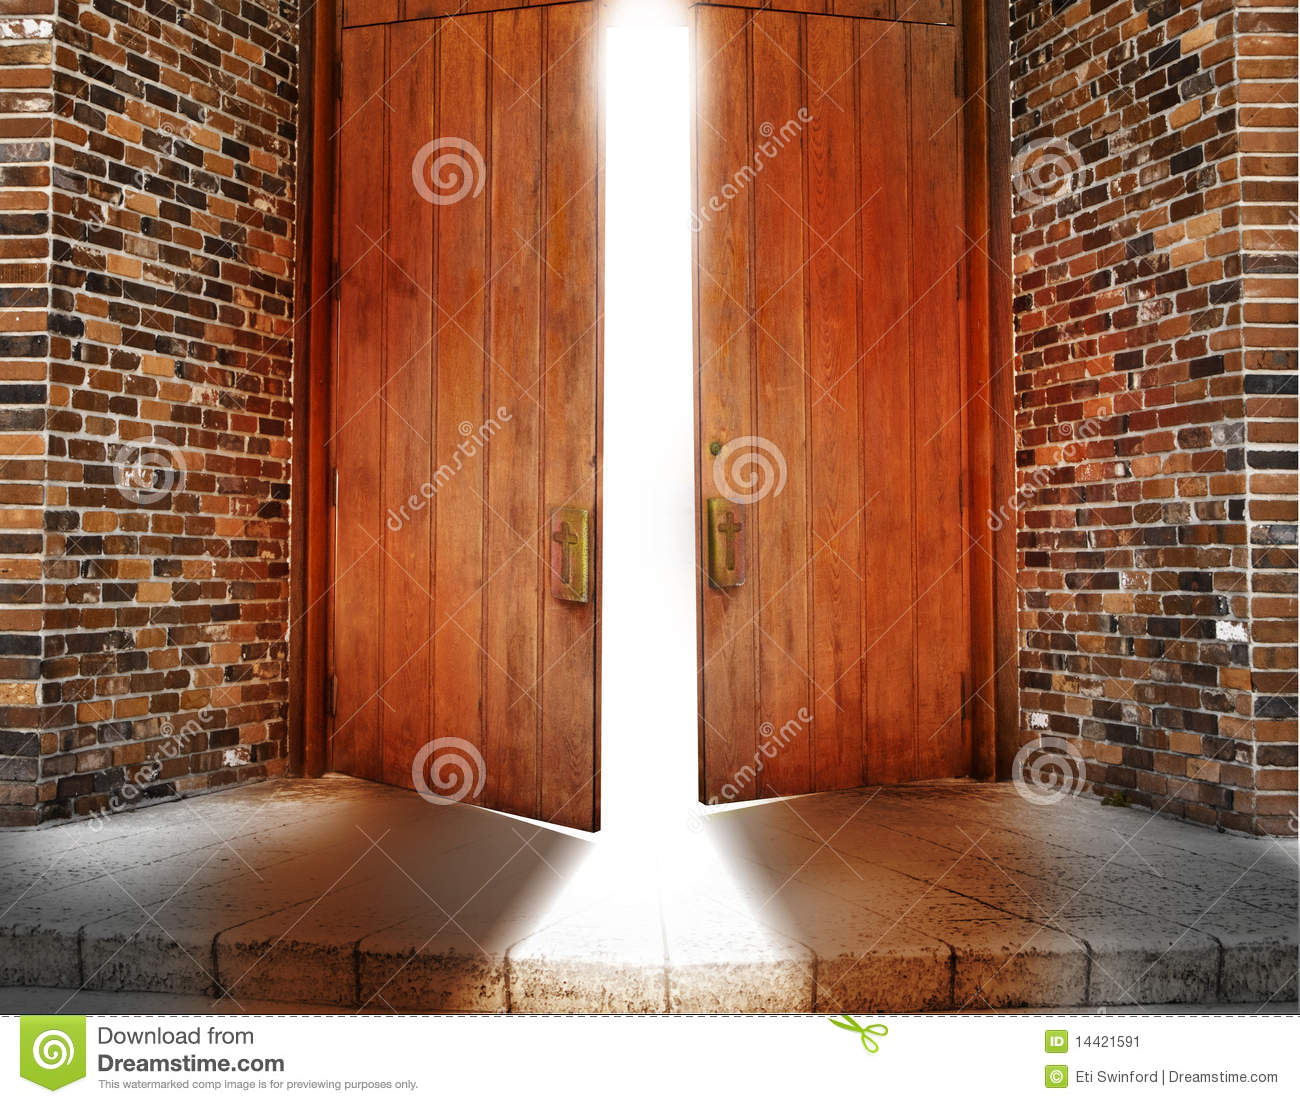 Open church door clipart - Church Doors Stock Image